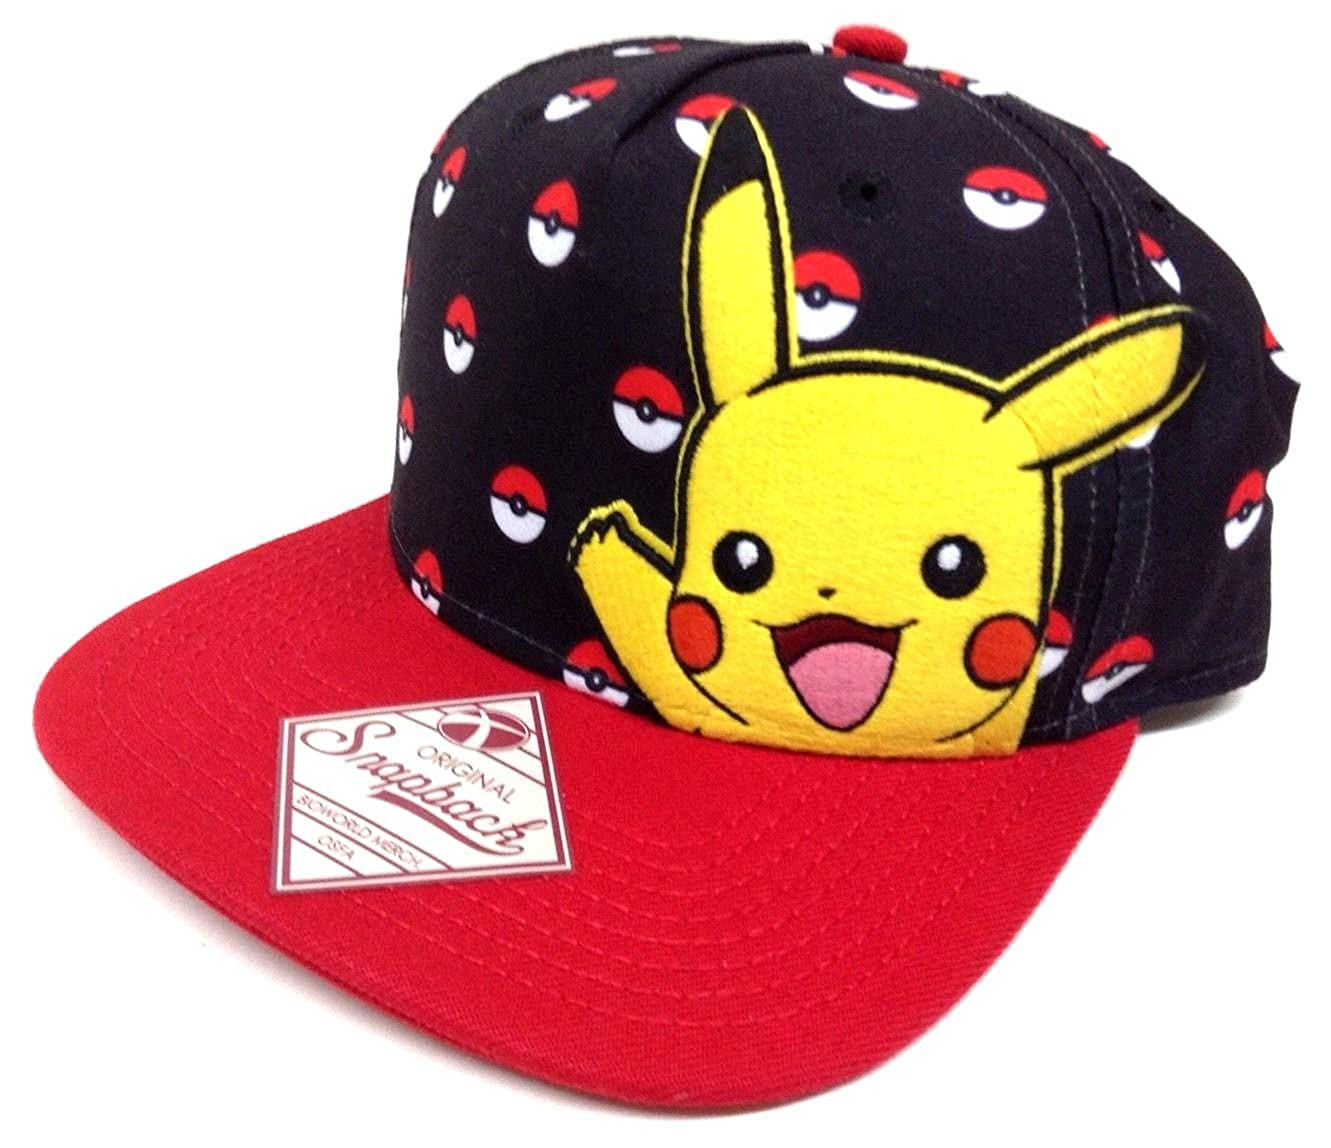 417efa98f Amazon.com: Pokemon Black & Red Pikachu Pokeball Snapback: Clothing